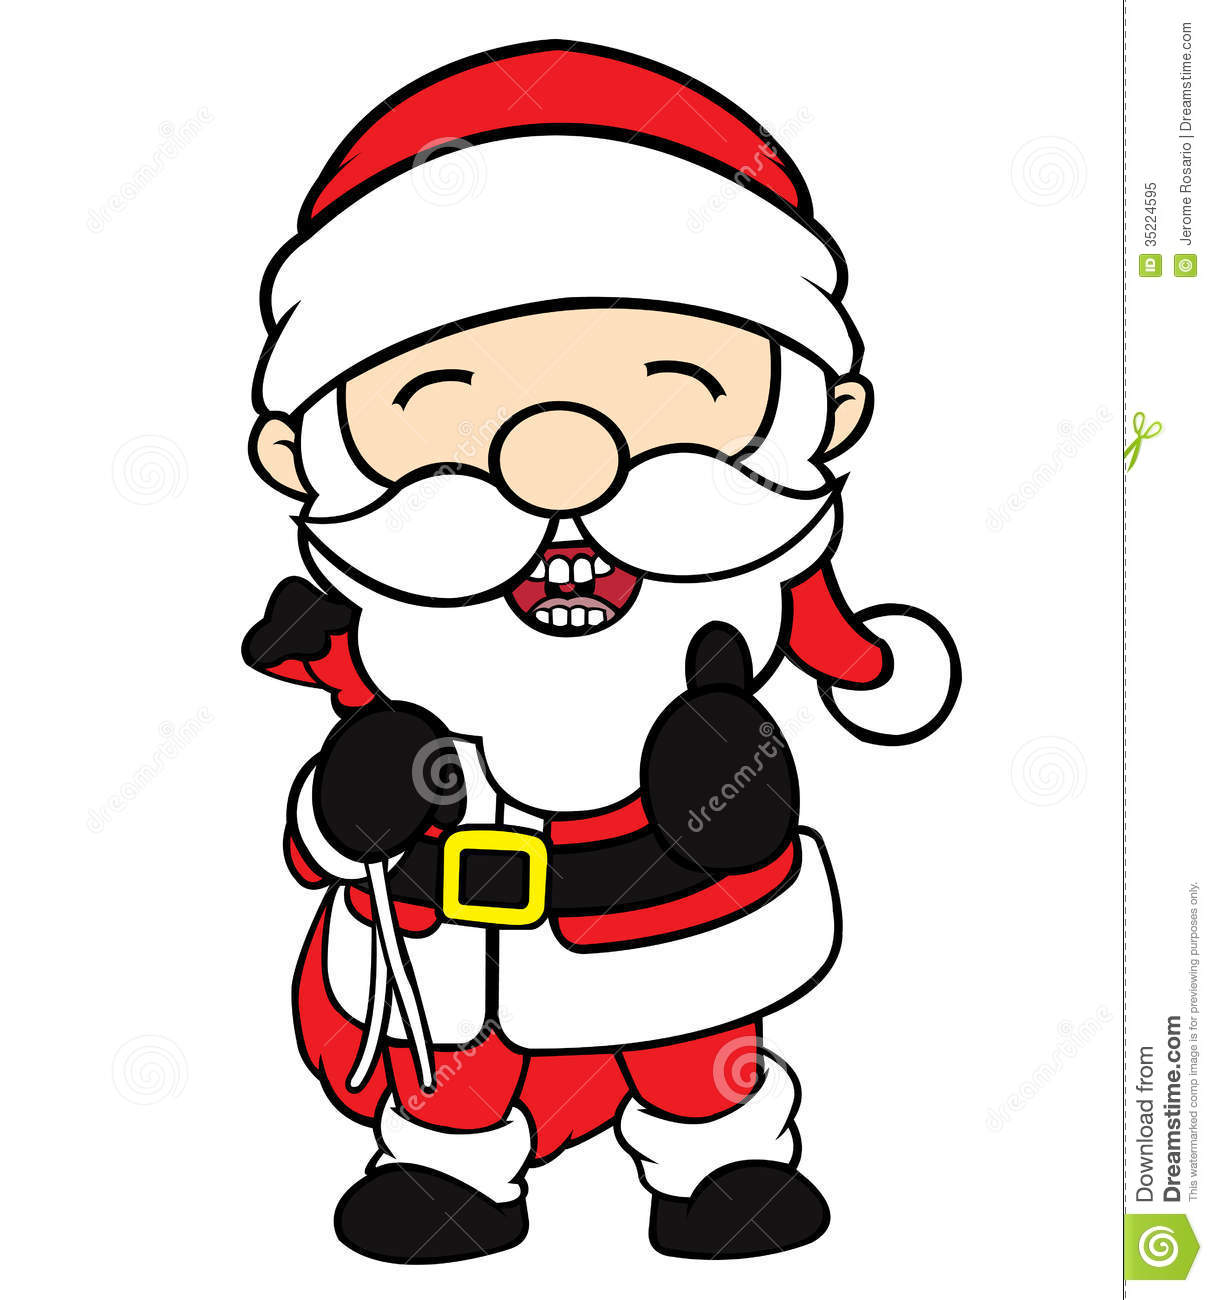 Christmas Elf Boy Royalty Free Stock Photo - Image: 35224595